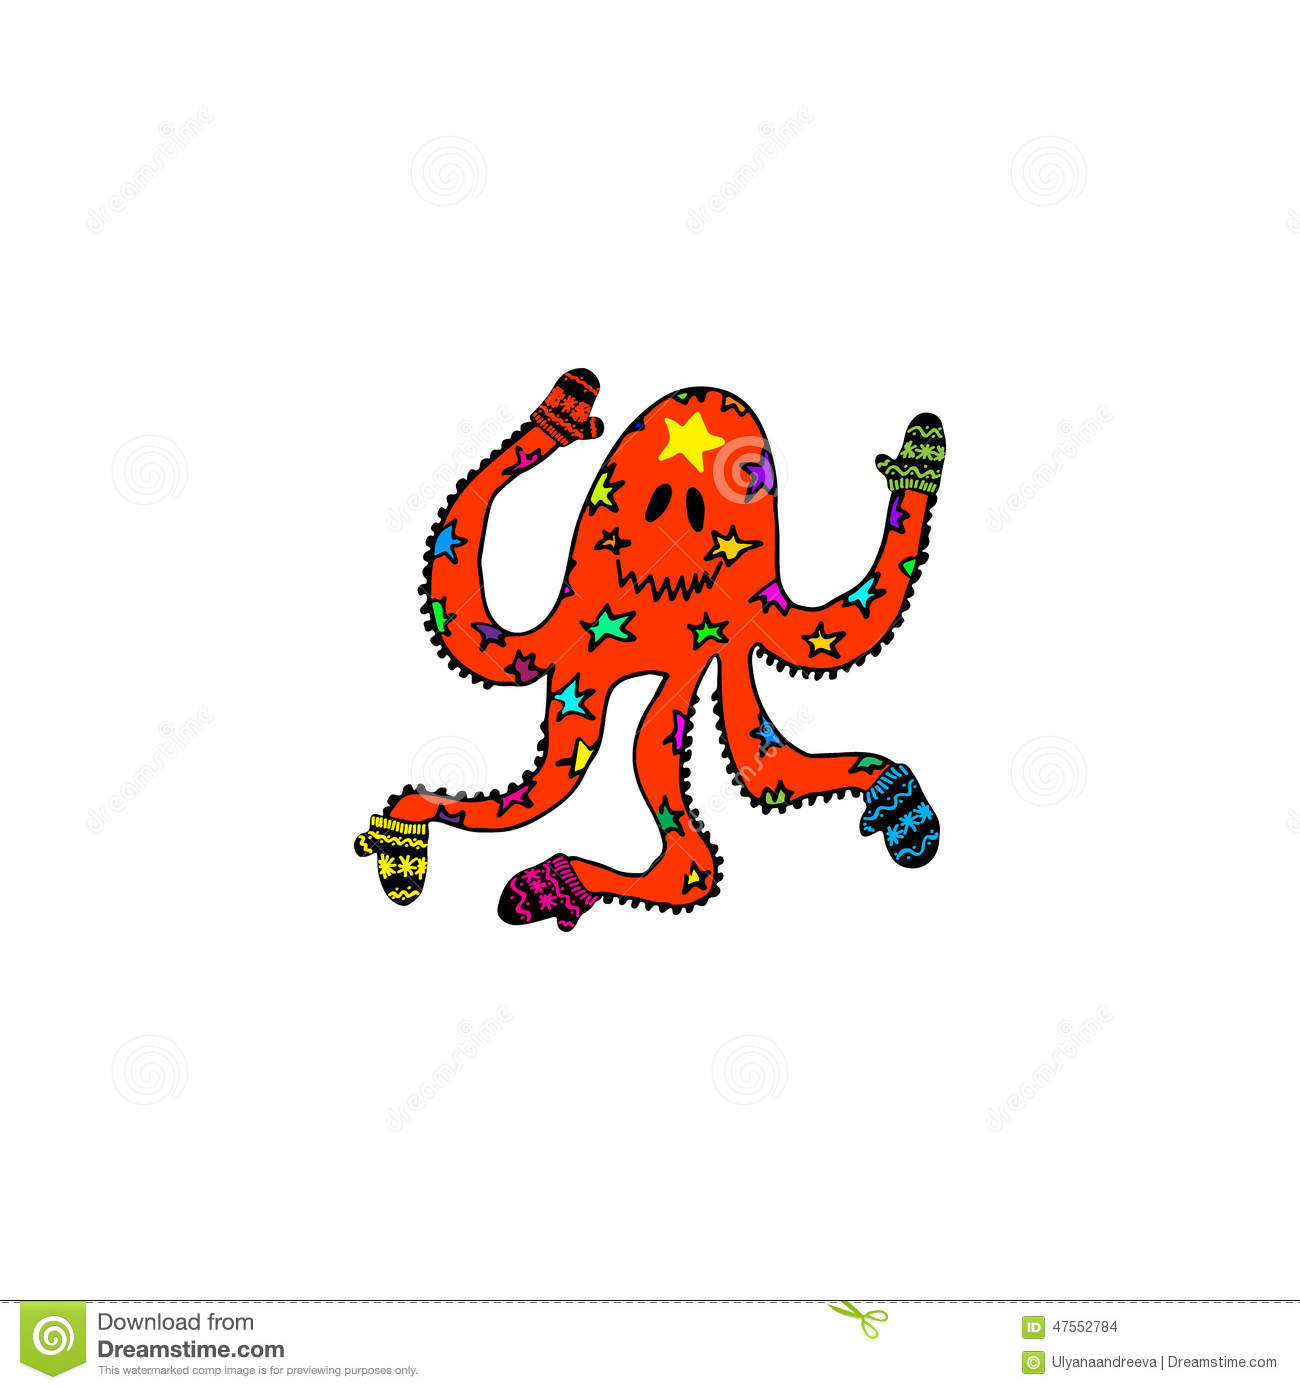 hand drawn monster cartoon octopus in mittens for christmas griiting cards